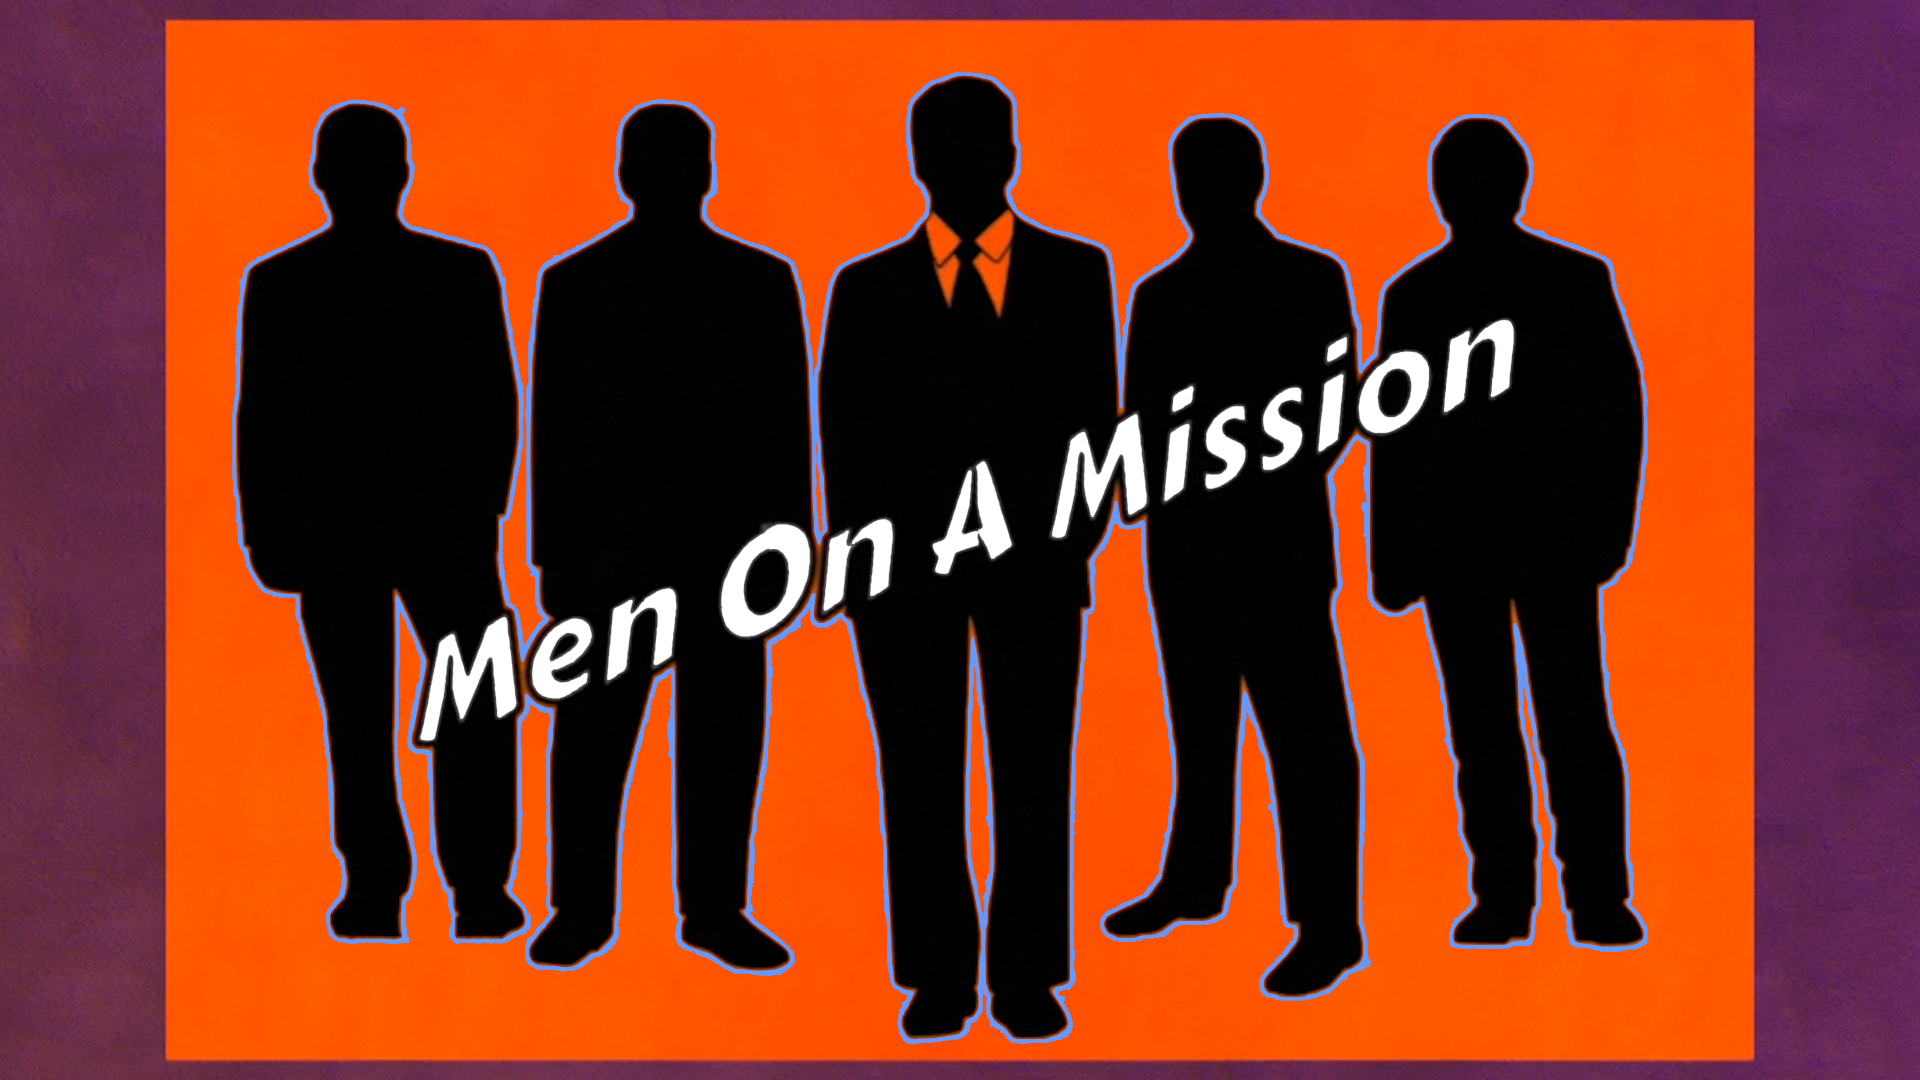 Men on a Mission S2E3